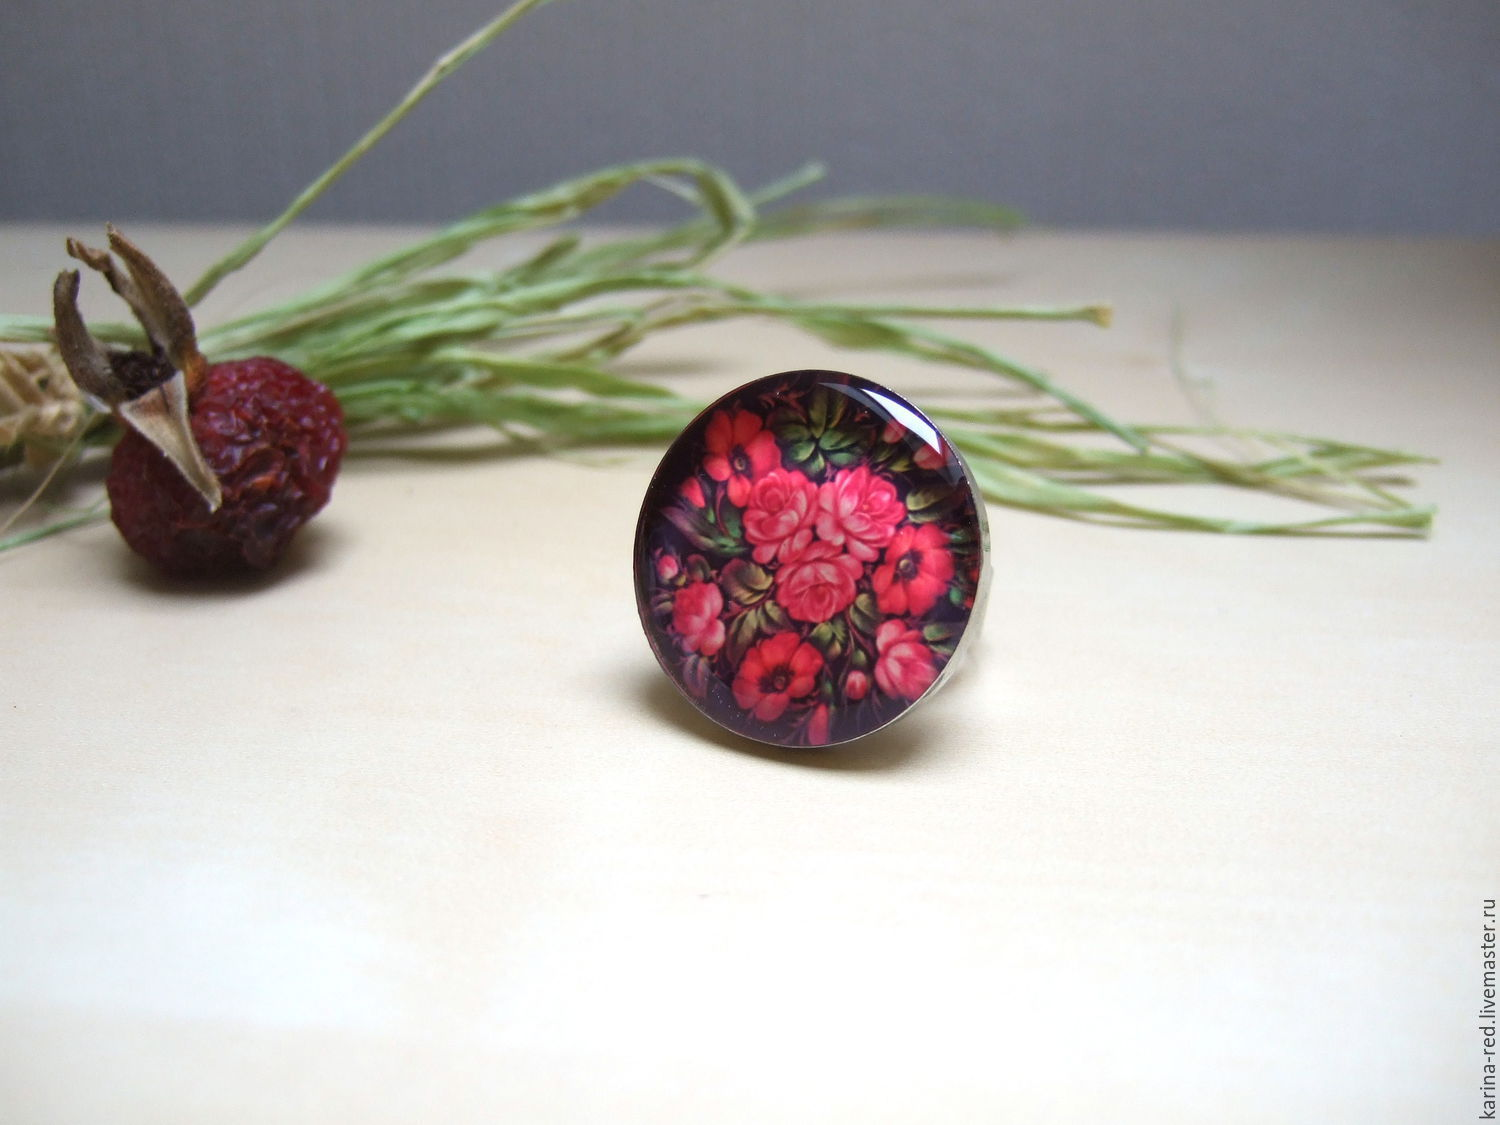 shop gifts shop handmade jewelry original ring ring jewelry in stock and for the order jewelry epoxy resin jewelry epoxy jewelry photo ring pattern